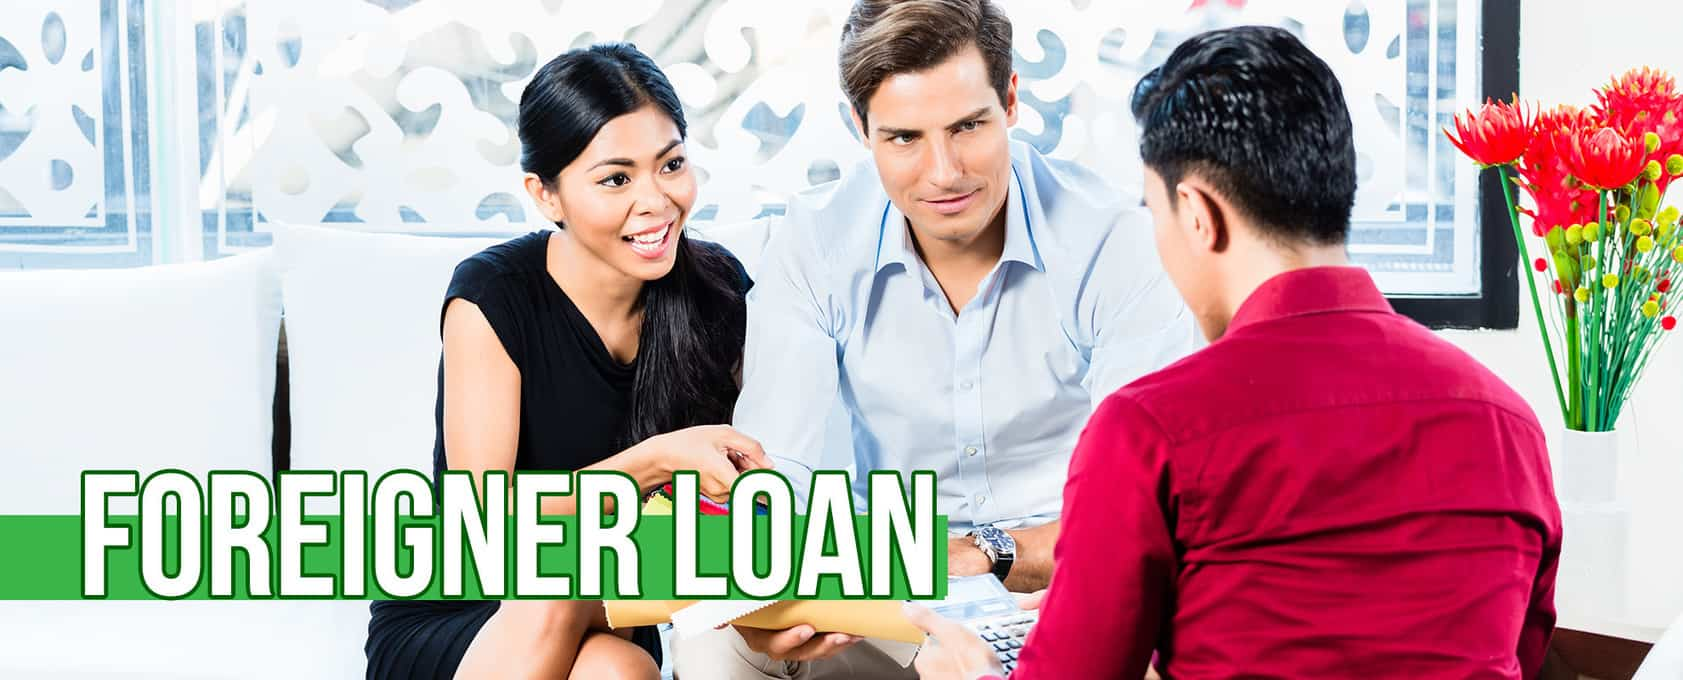 A guideline to get the best foreigner loan: Is it possible to get Personal loans for foreigners in Singapore?